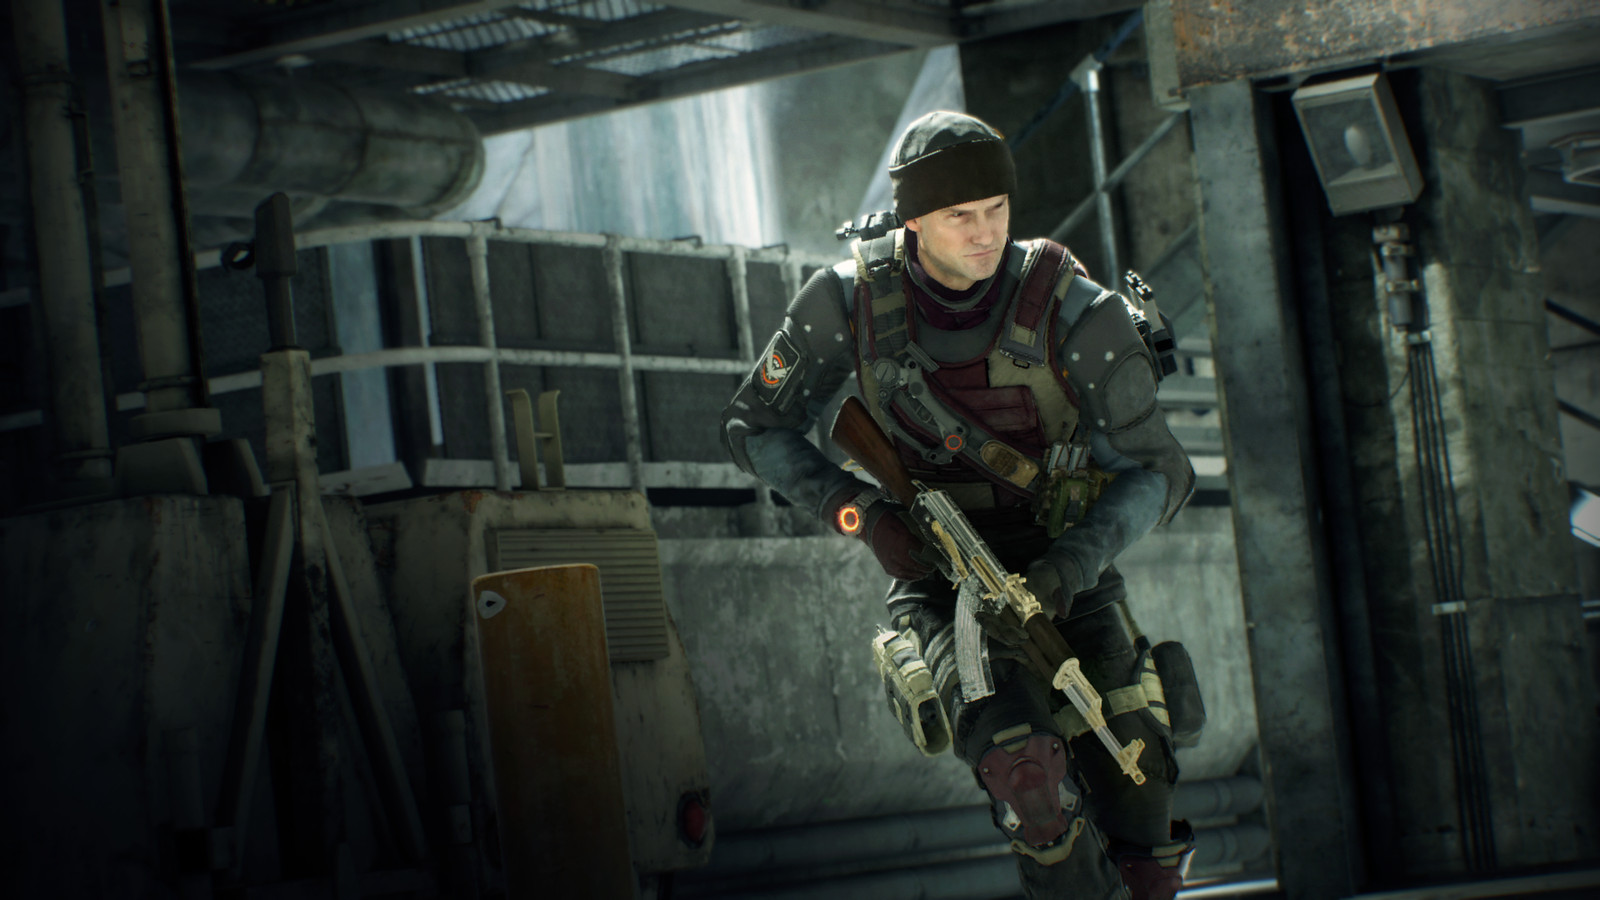 Oblivion Wallpaper Hd The Division S Next Update Promises To Make The Game Feel